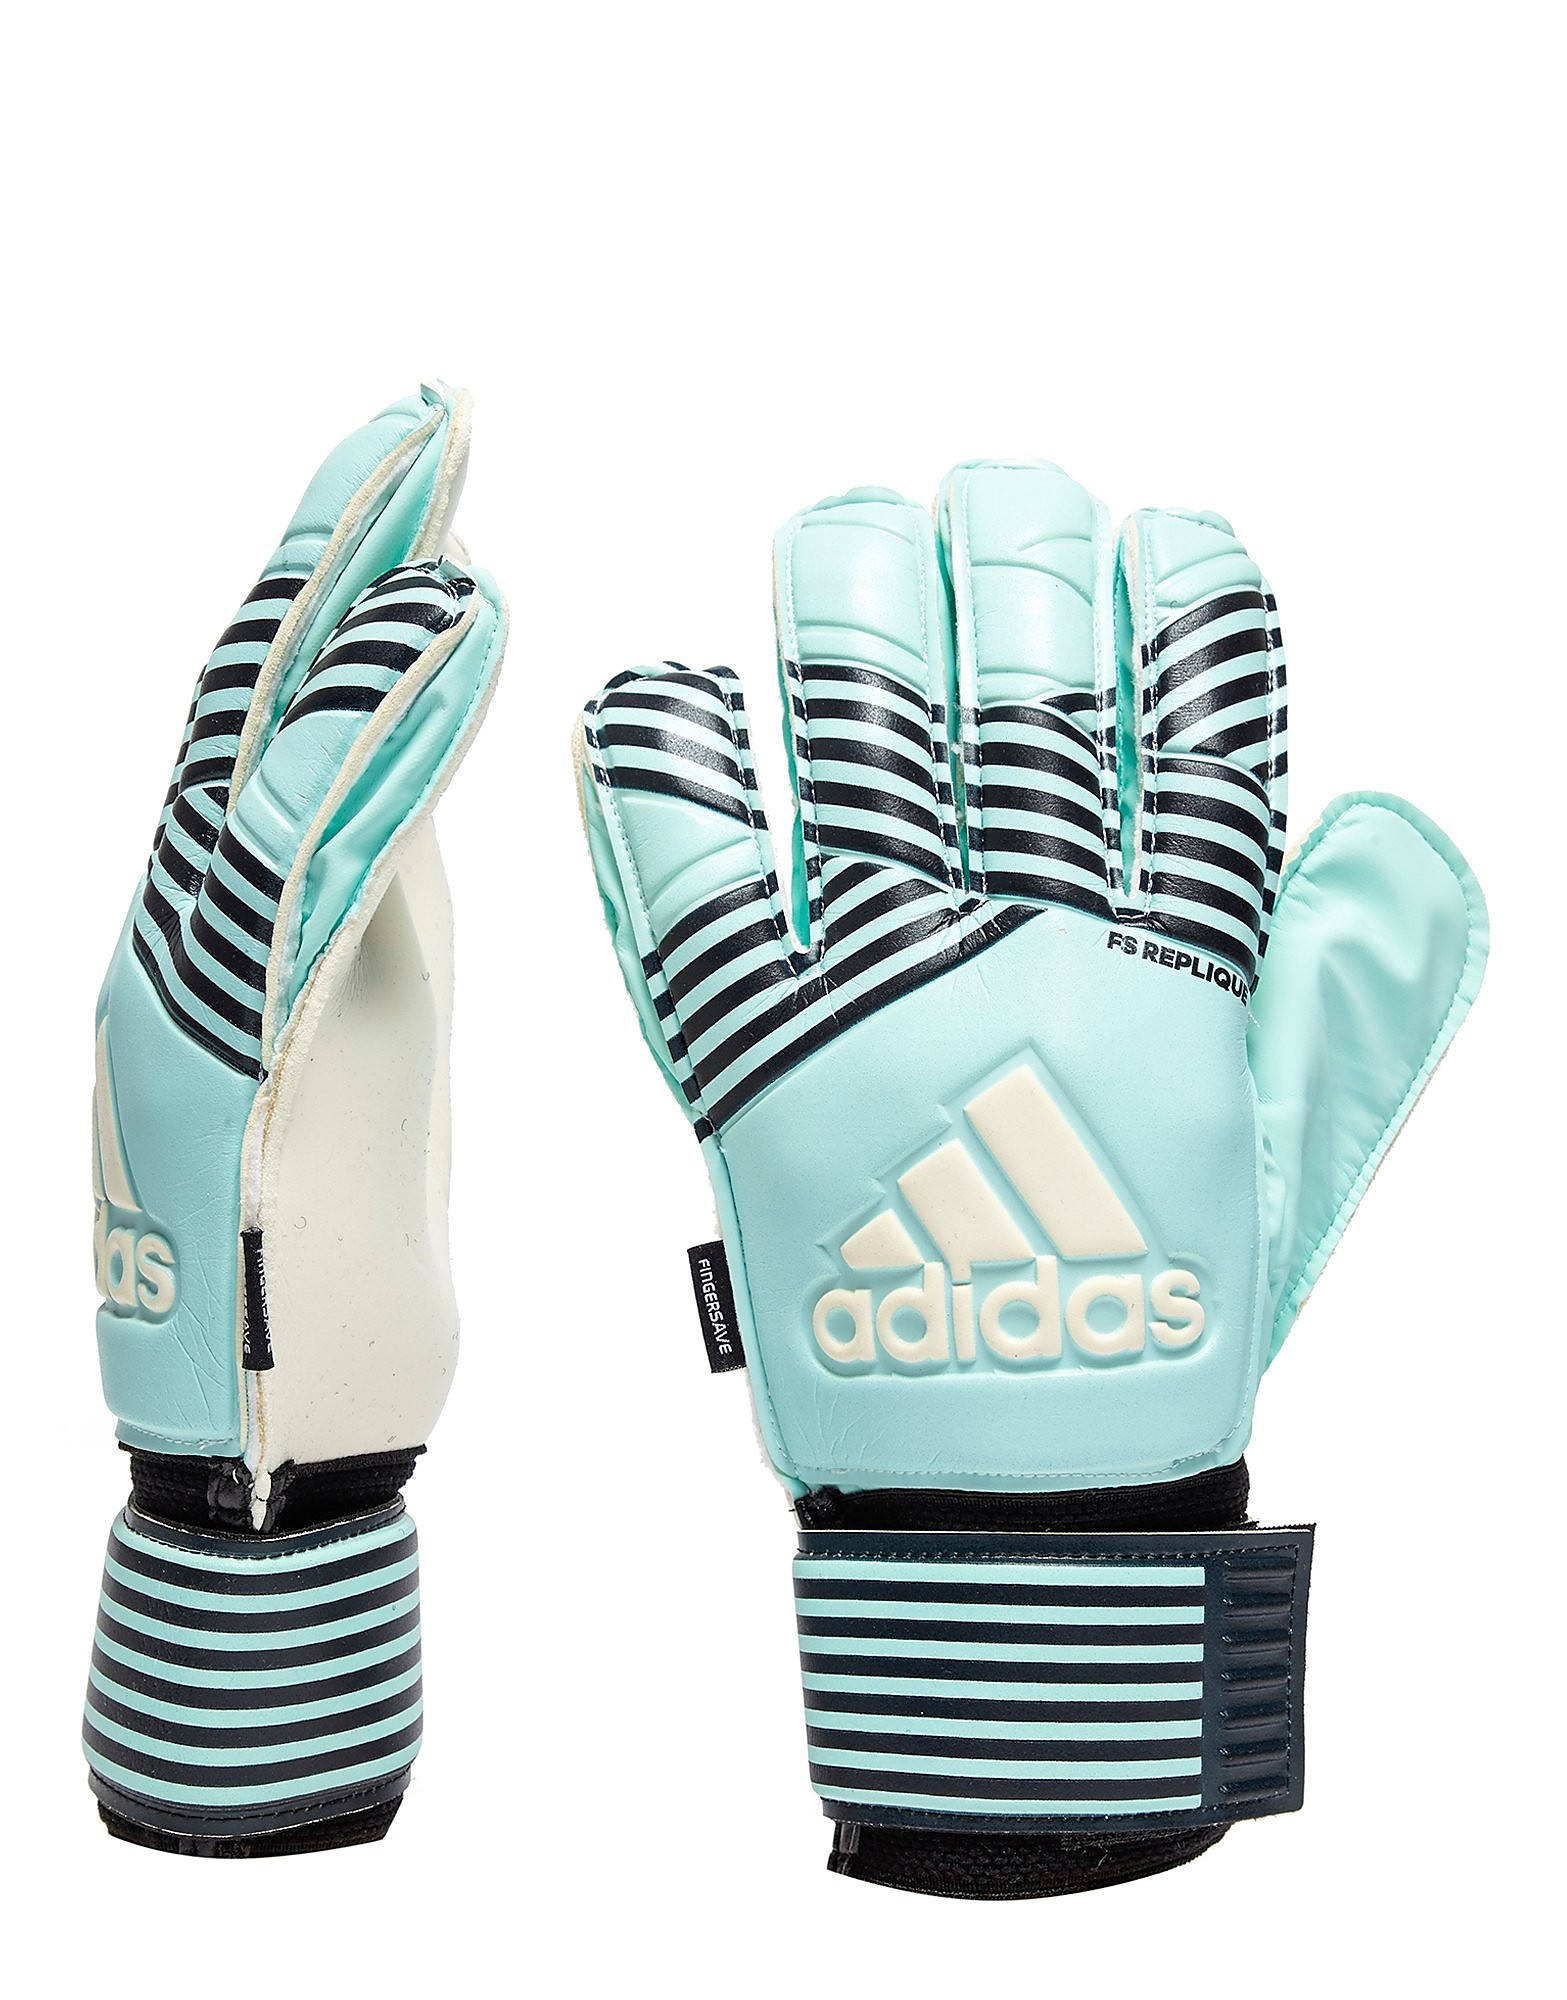 adidas adidas Ace Fingersave Replique Goal Keeper Gloves